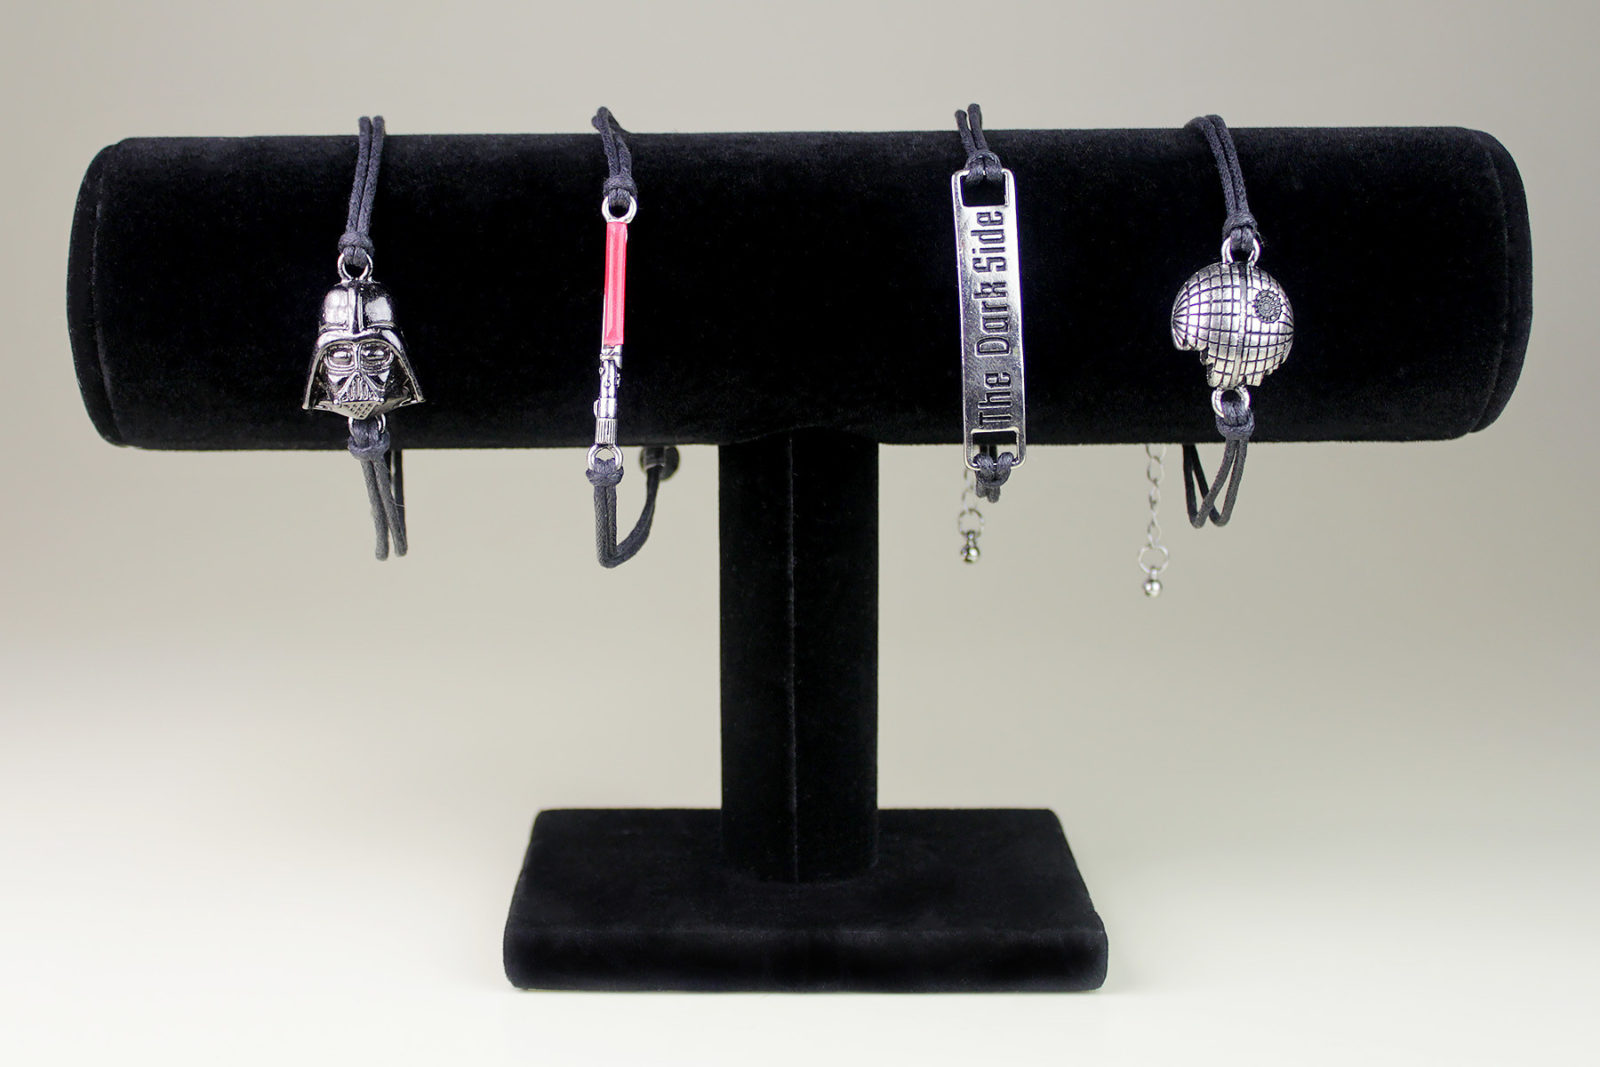 Review – Star Wars Dark Side bracelet set